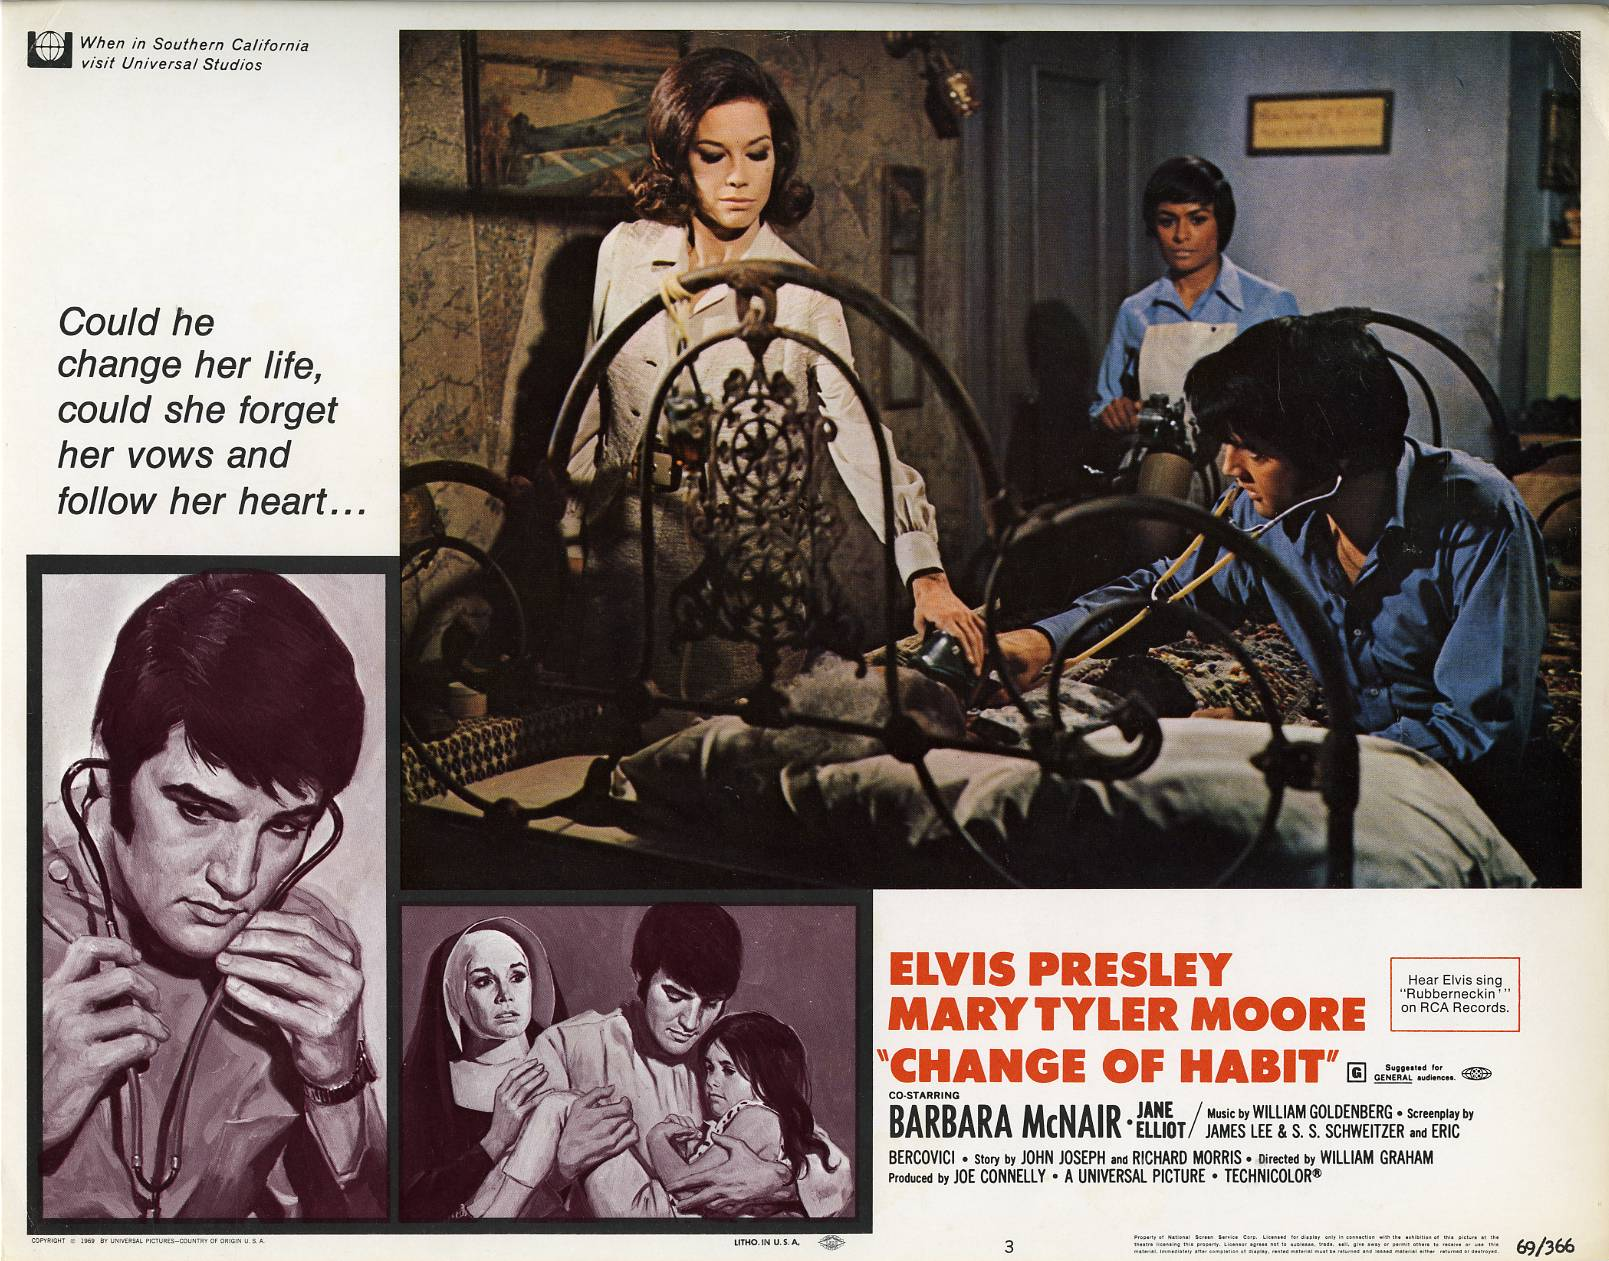 Elvis Presley, Mary Tyler Moore, Lorena Kirk, and Barbara McNair in Change of Habit (1969)